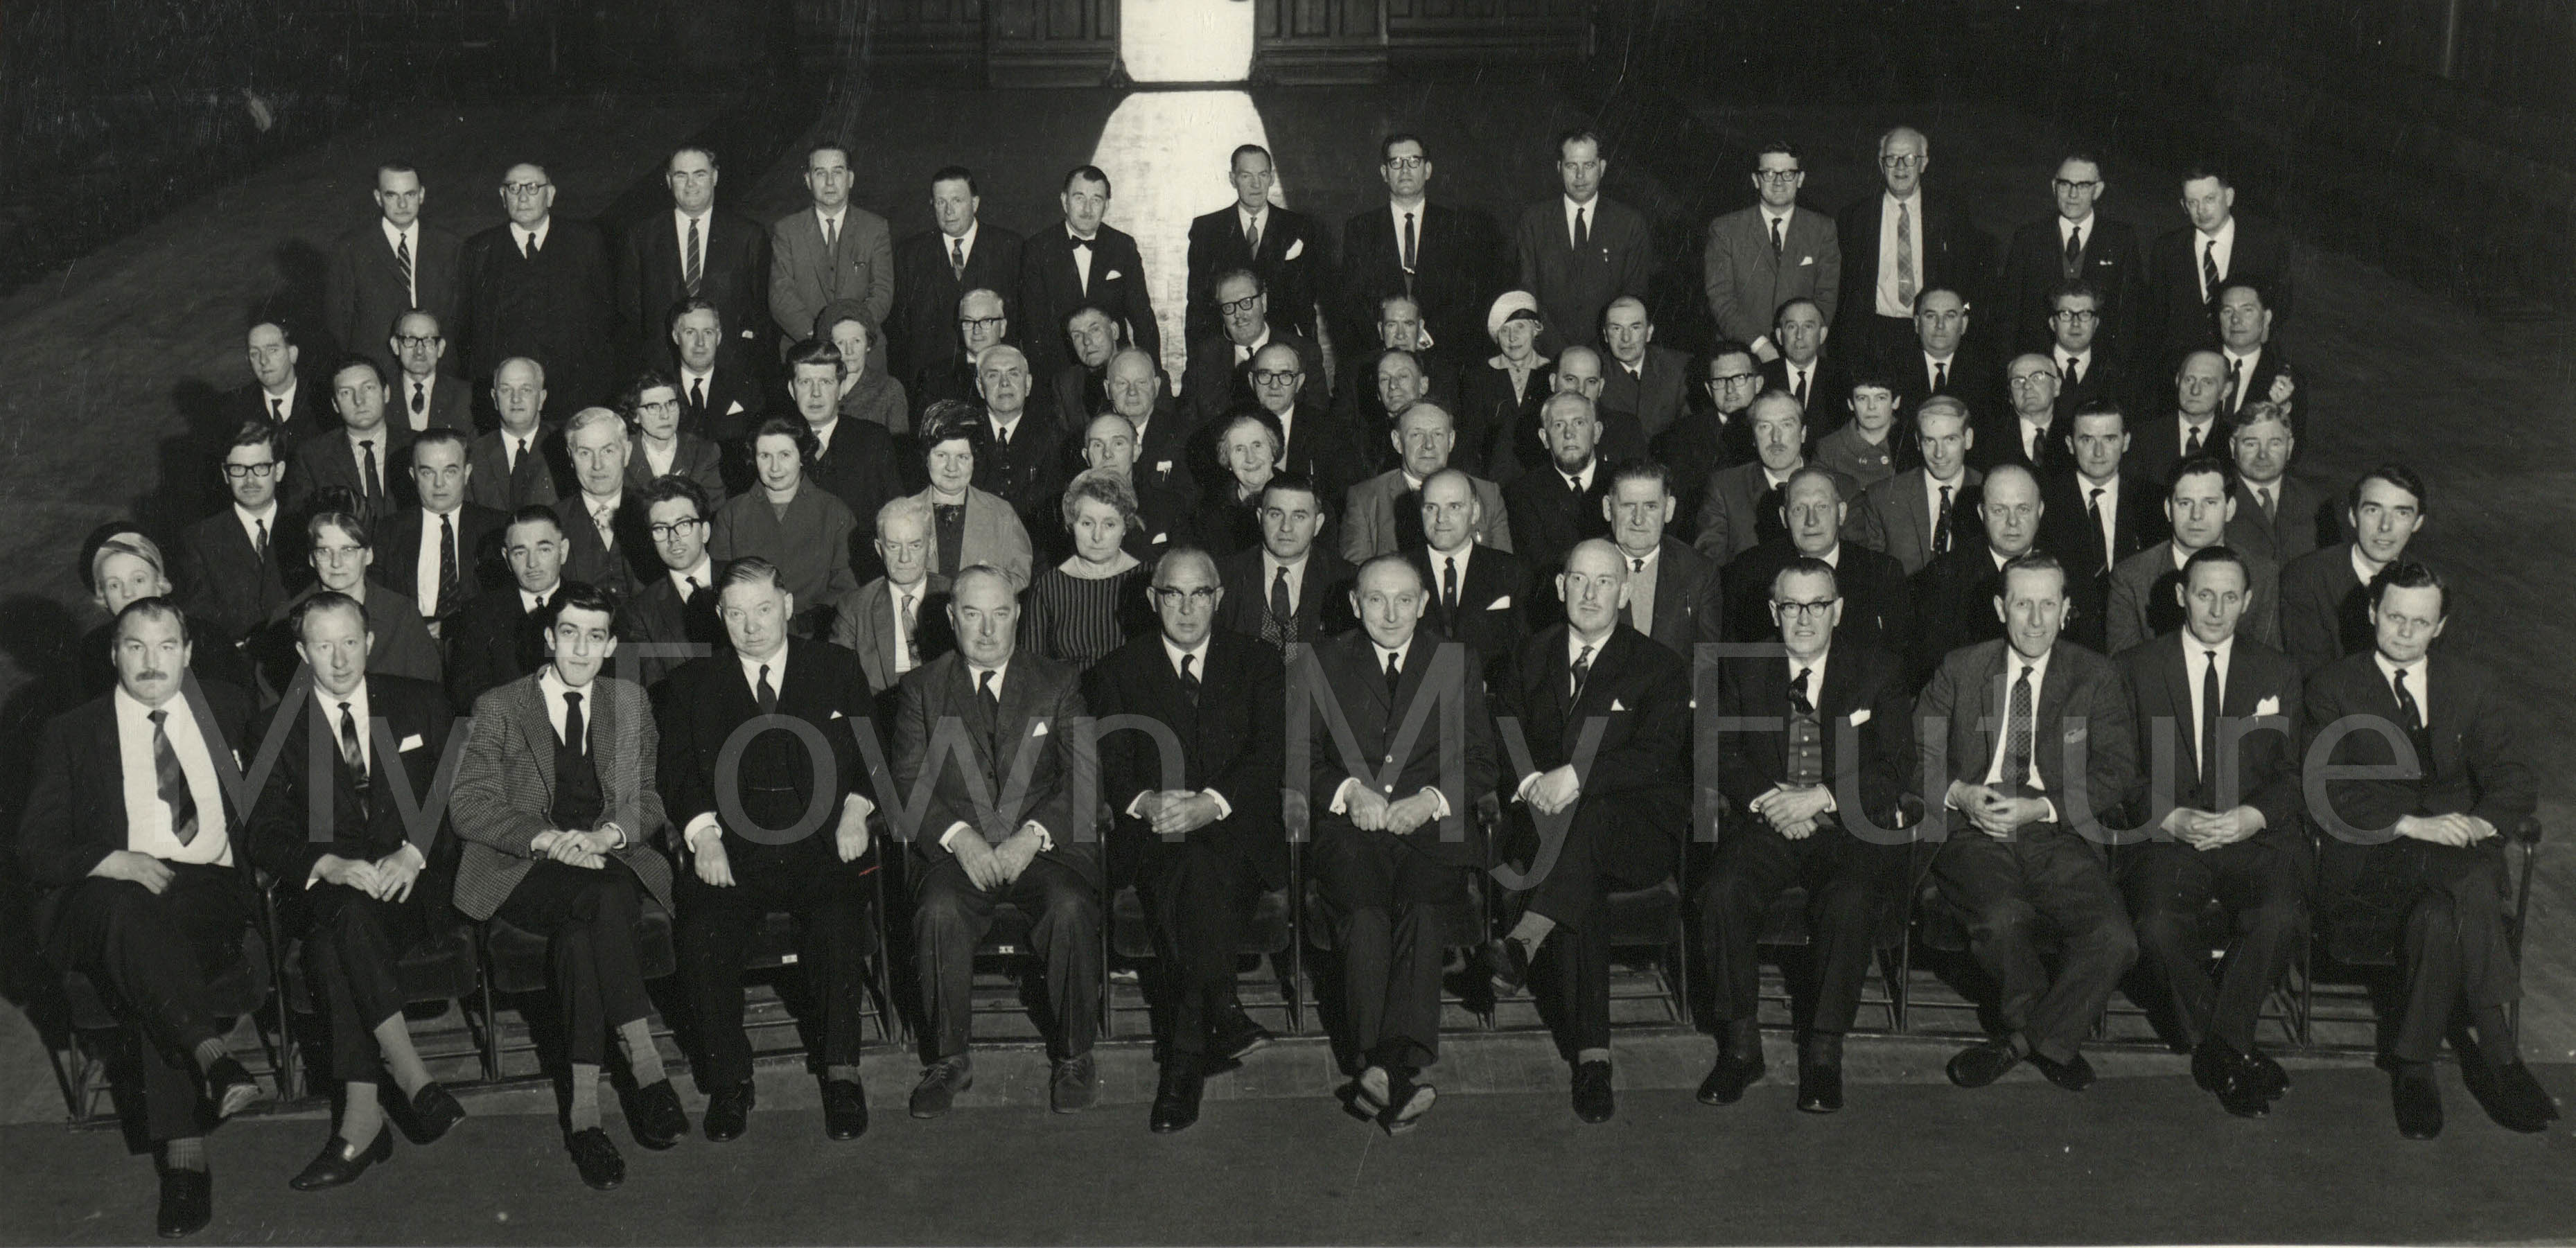 First Teesside Council 1967